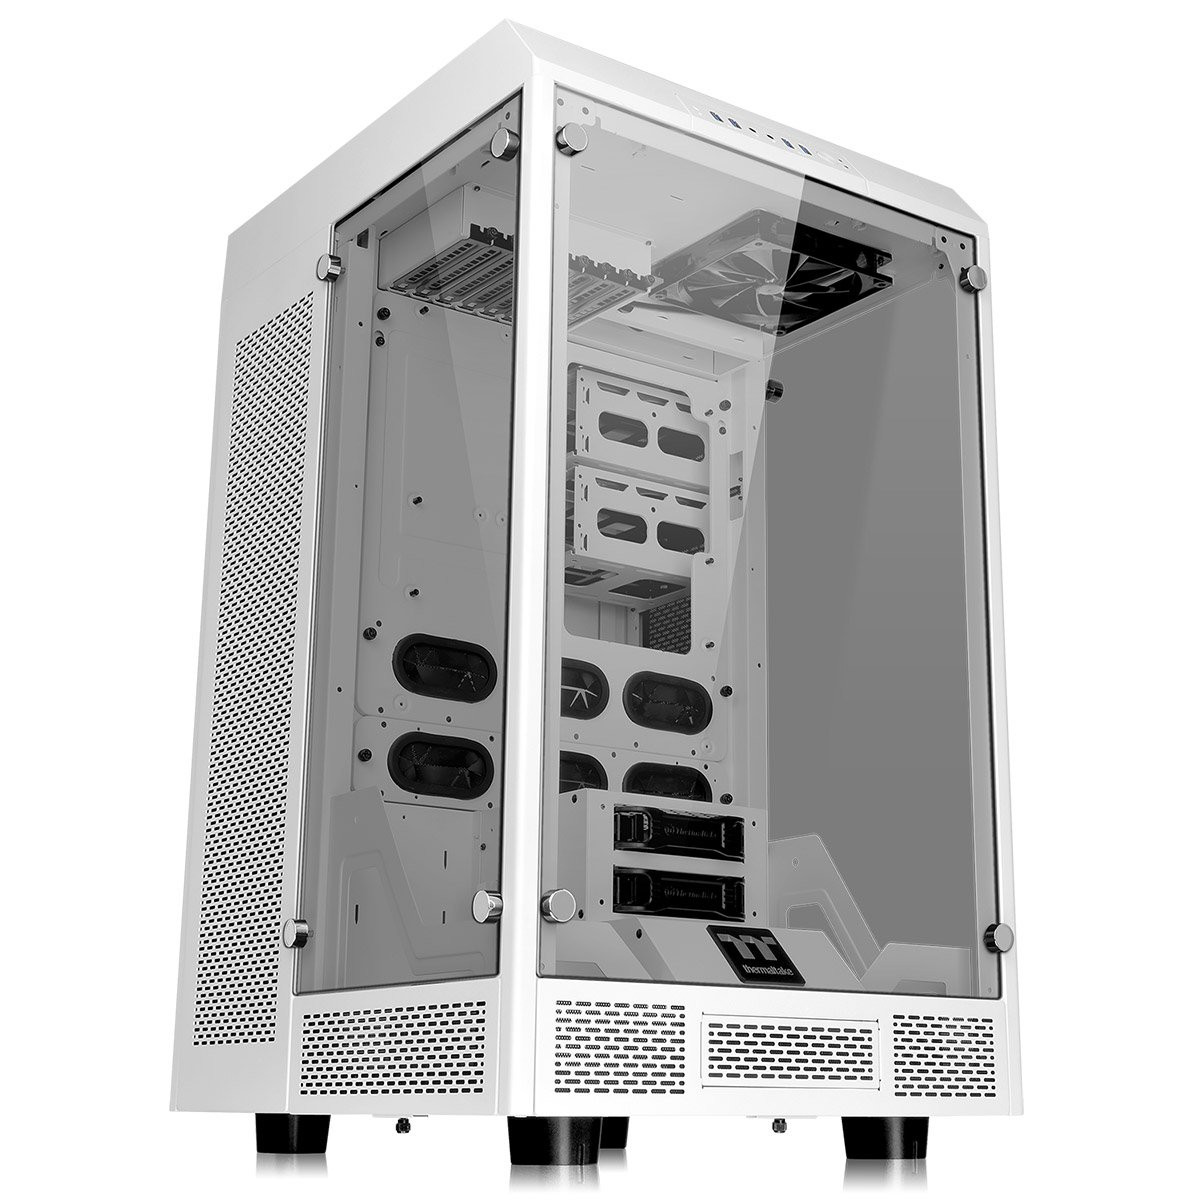 The Tower 900 Thermaltake White PC Case E-ATX Tempered Glass   Spot On  computer PC cases